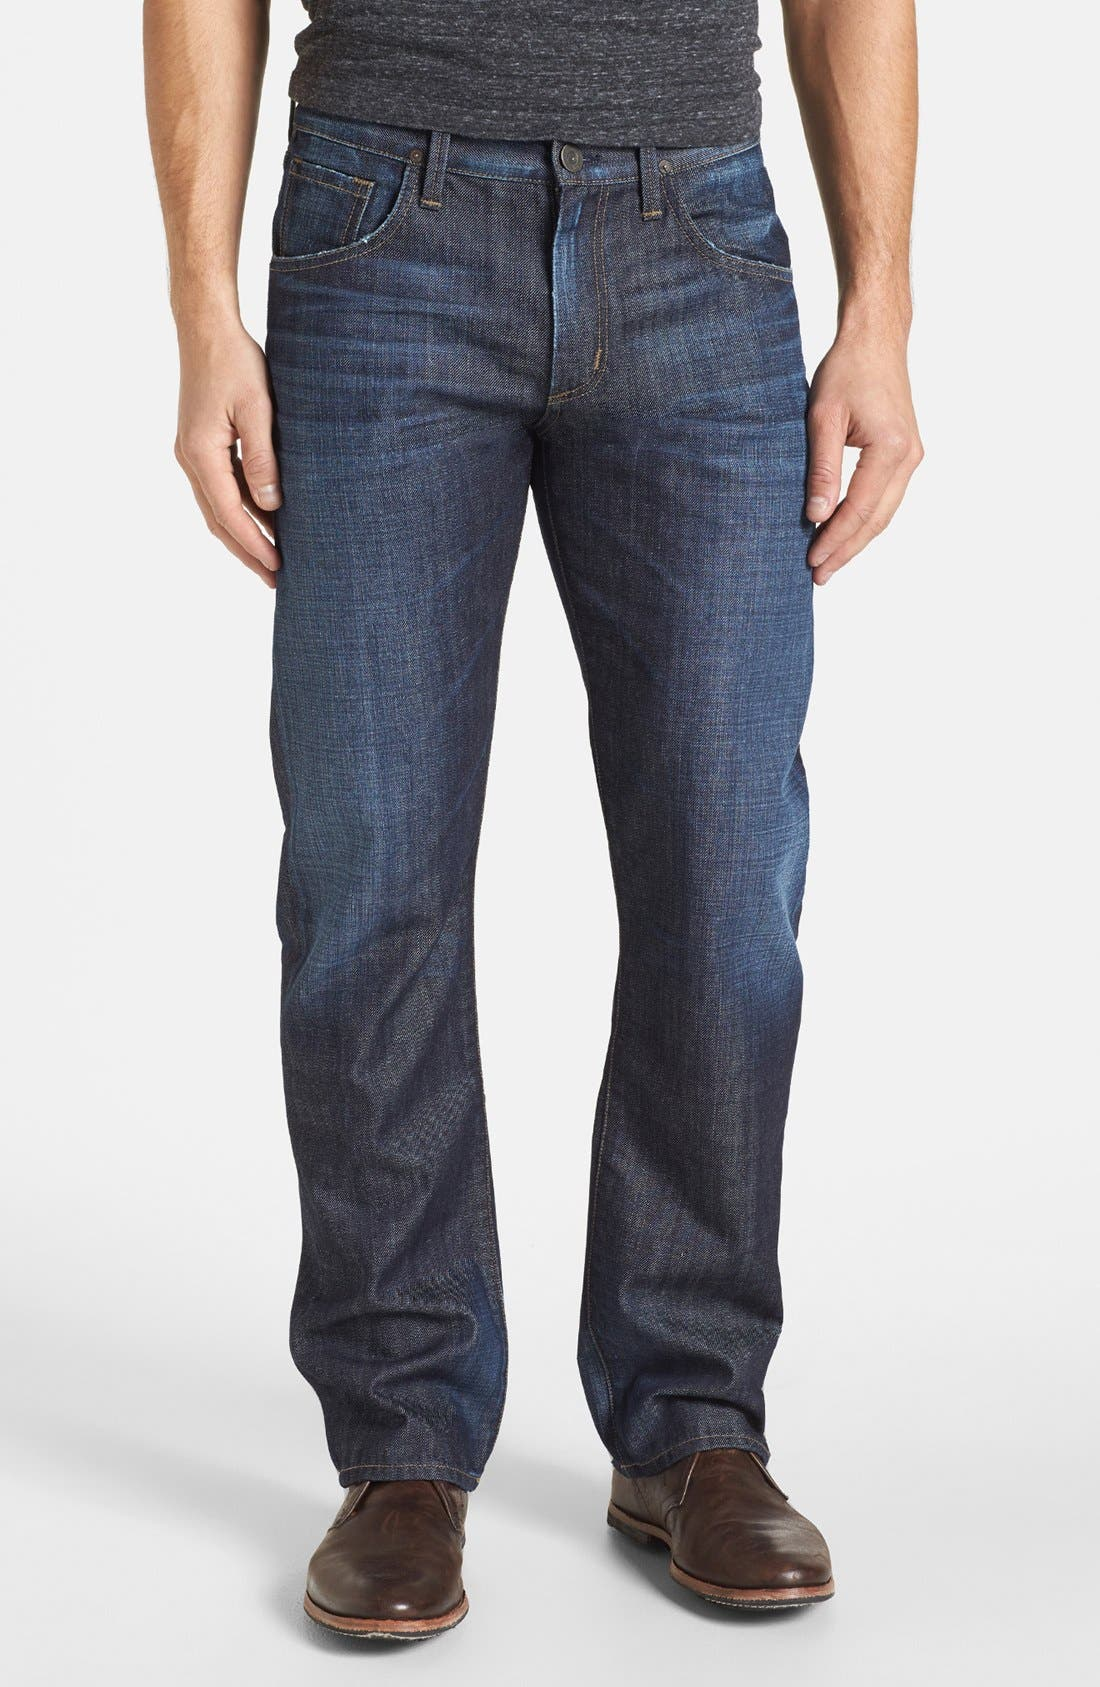 Alternate Image 1 Selected - Citizens of Humanity 'Perfect' Relaxed Leg Jeans (Colt)